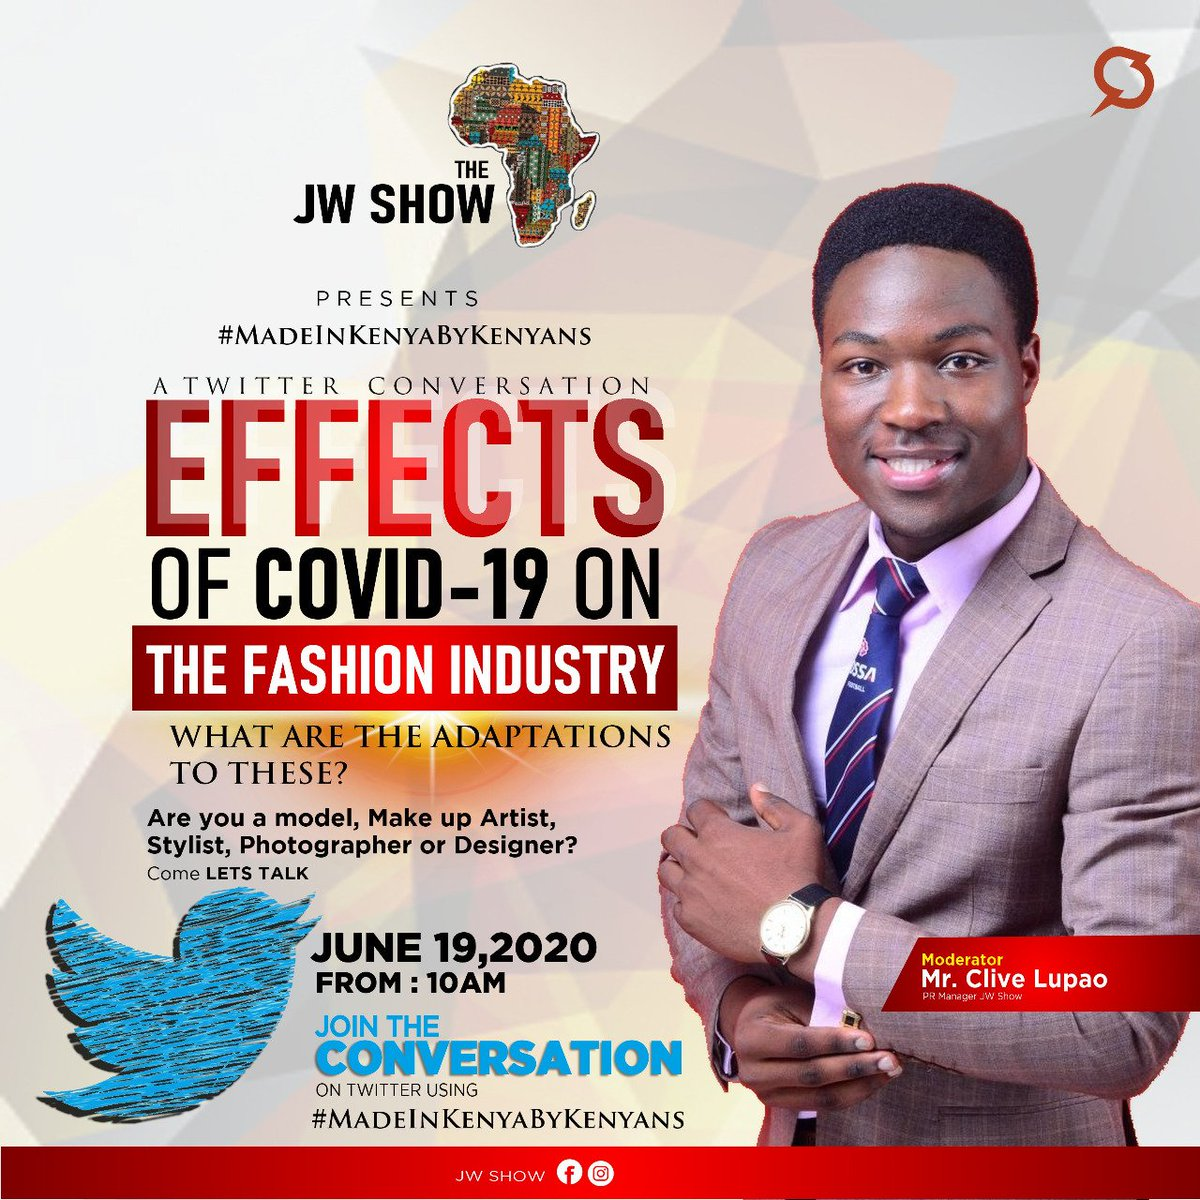 The Jw Show Kenya On Twitter The Corona Virus Has Hugely Affected The Kenyan Fashion Industry Due To Cancellation Of Fashion Events And Disruption Of The Supply Chain For Key Industry Raw